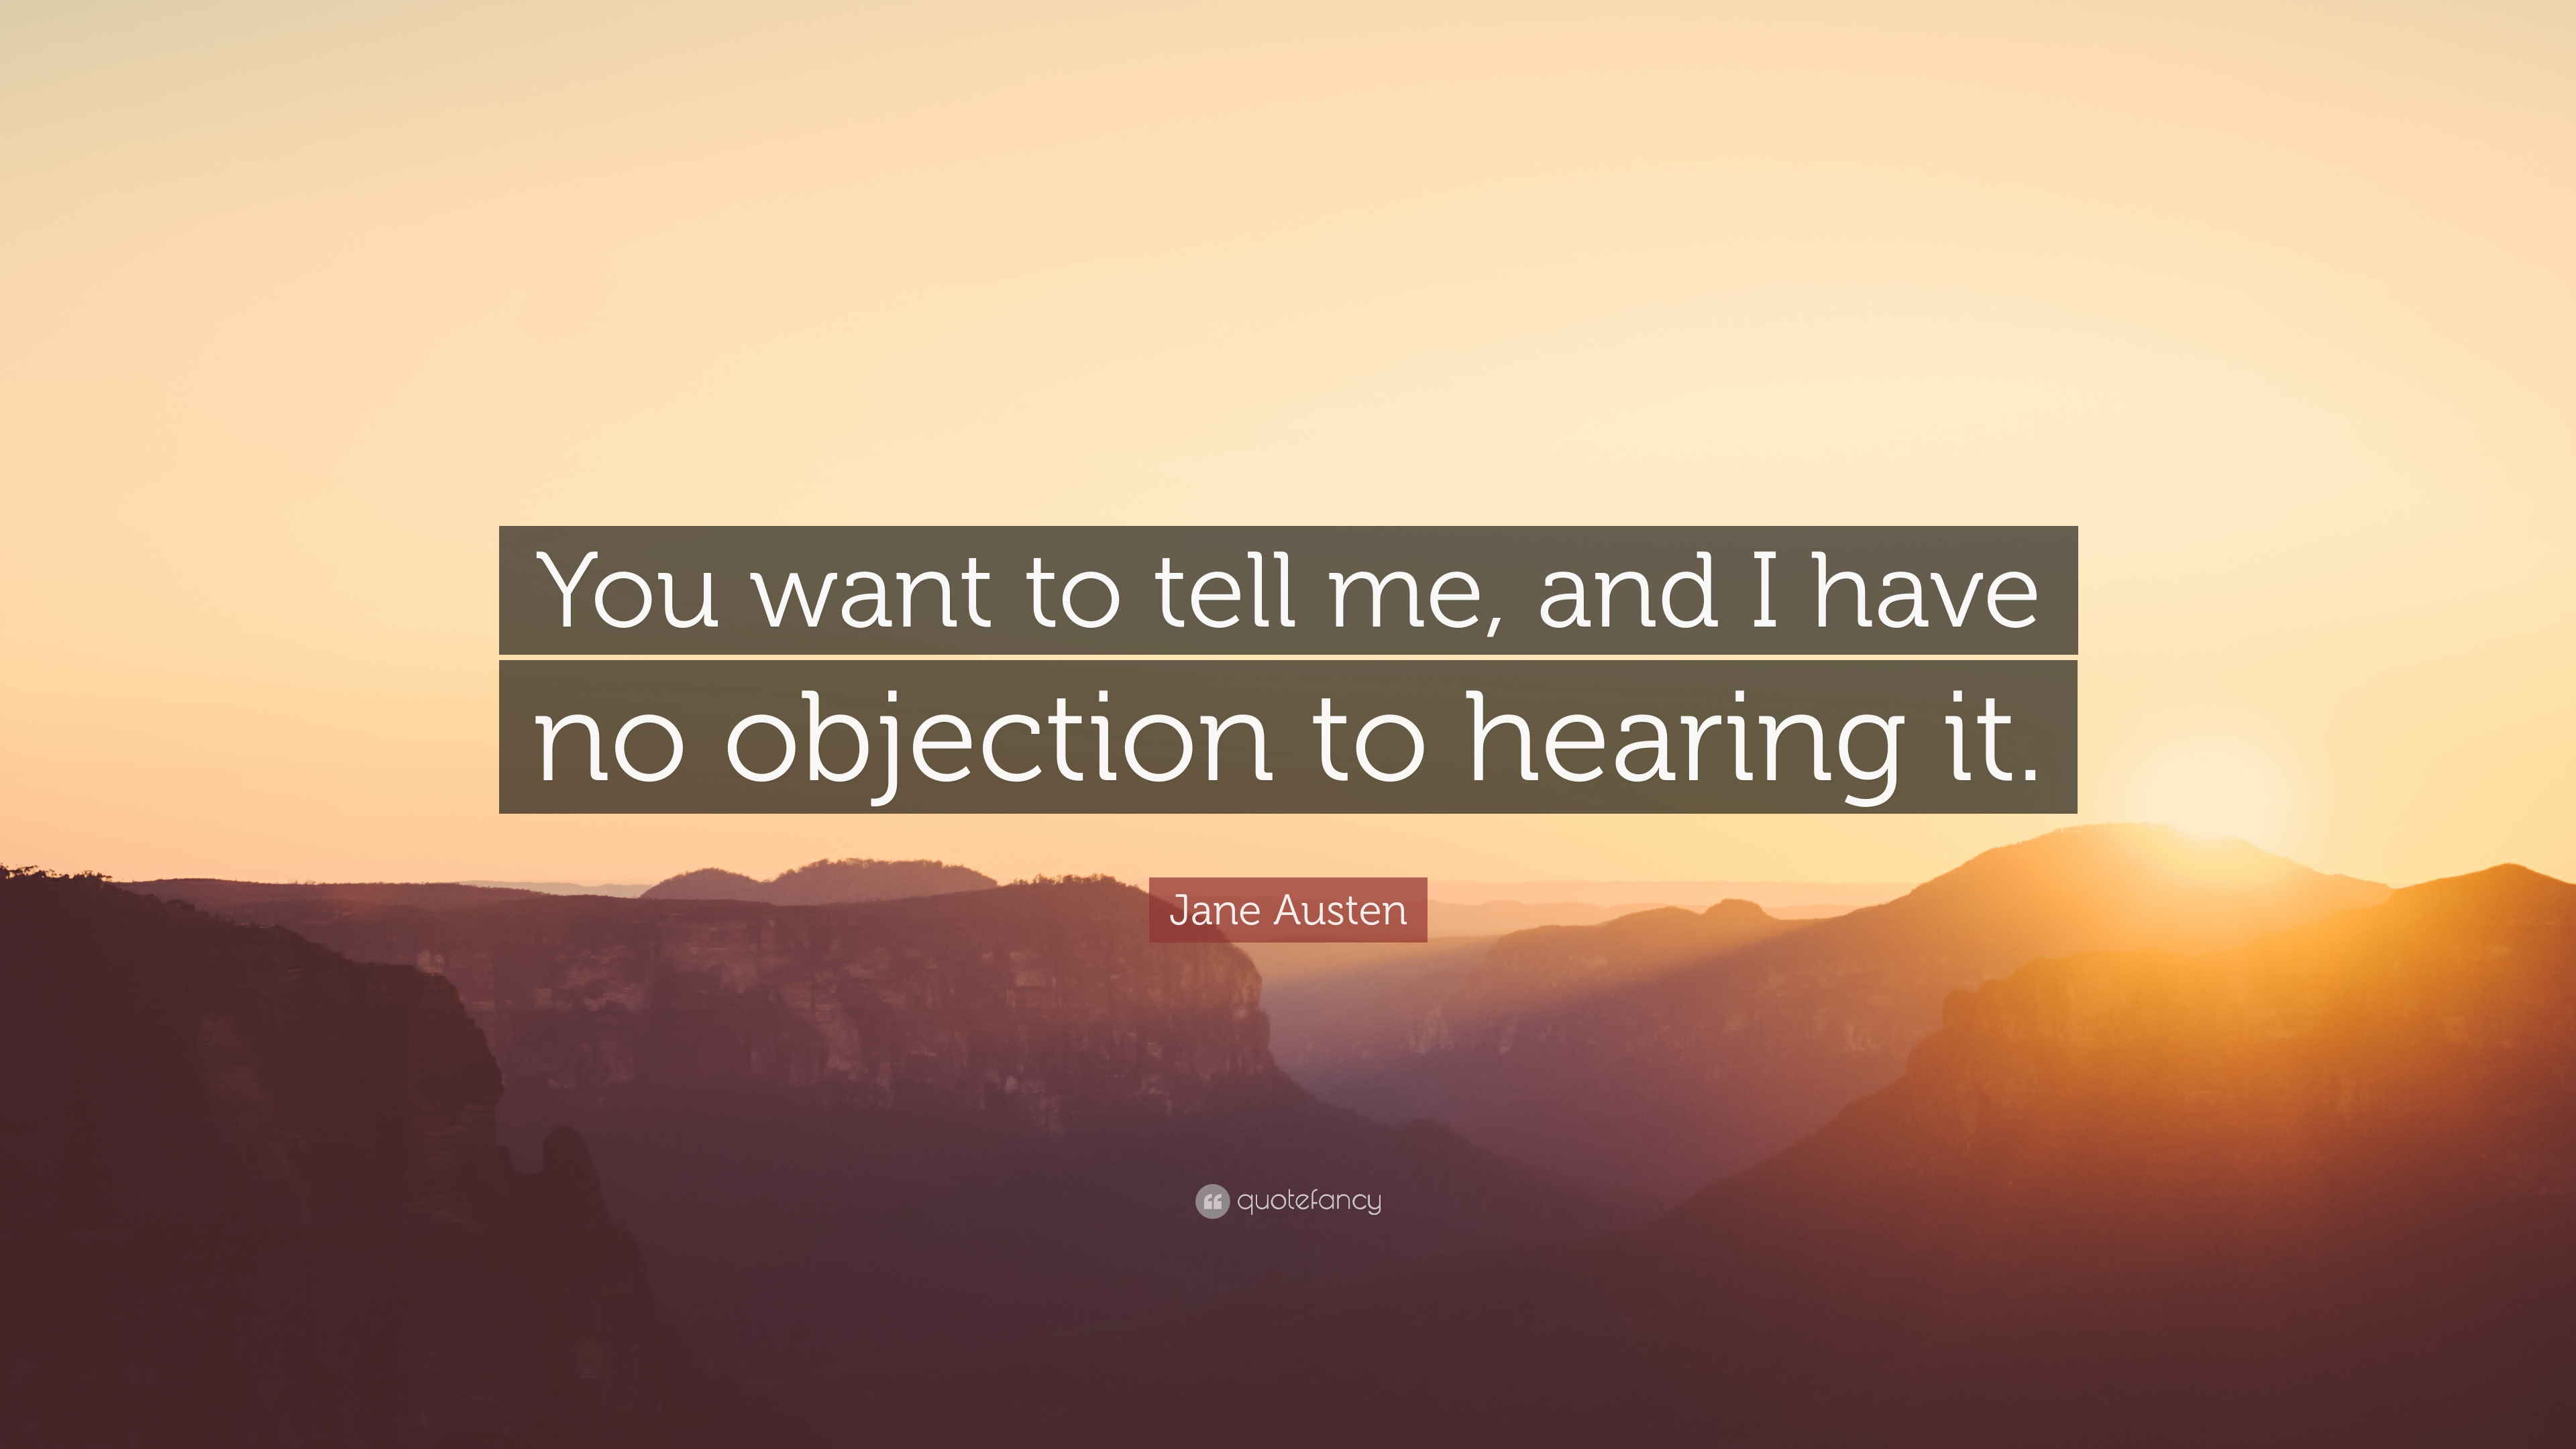 Jane Austen Quote: U201cYou Want To Tell Me, And I Have No Objection